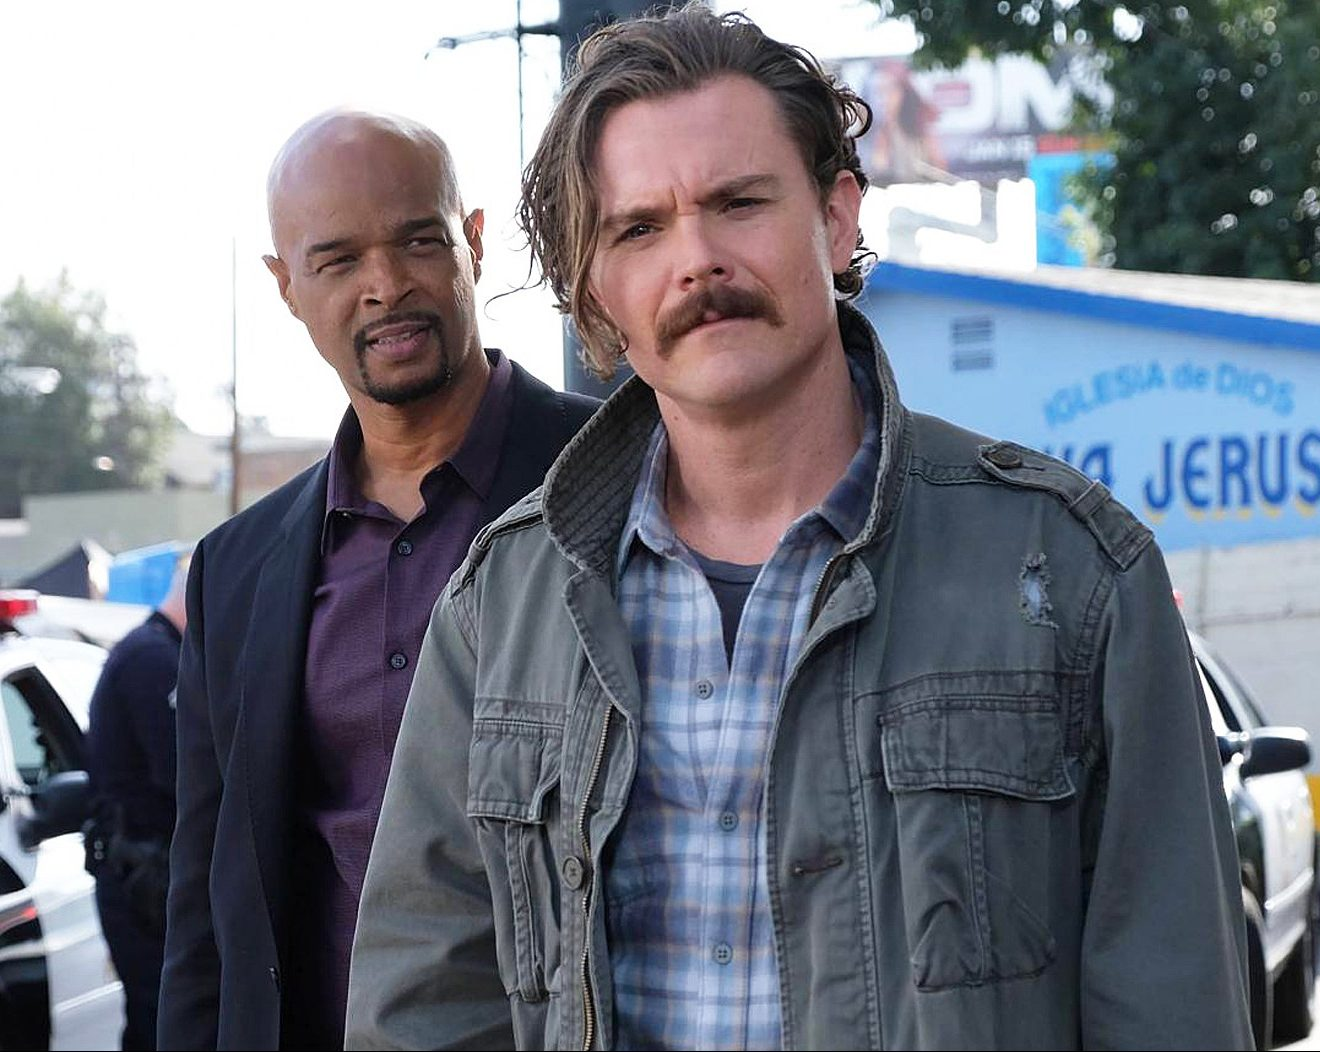 lethal weapon apology pic e1619615723648 The Best (And Worst) Revivals Of 80s Movies And TV Shows